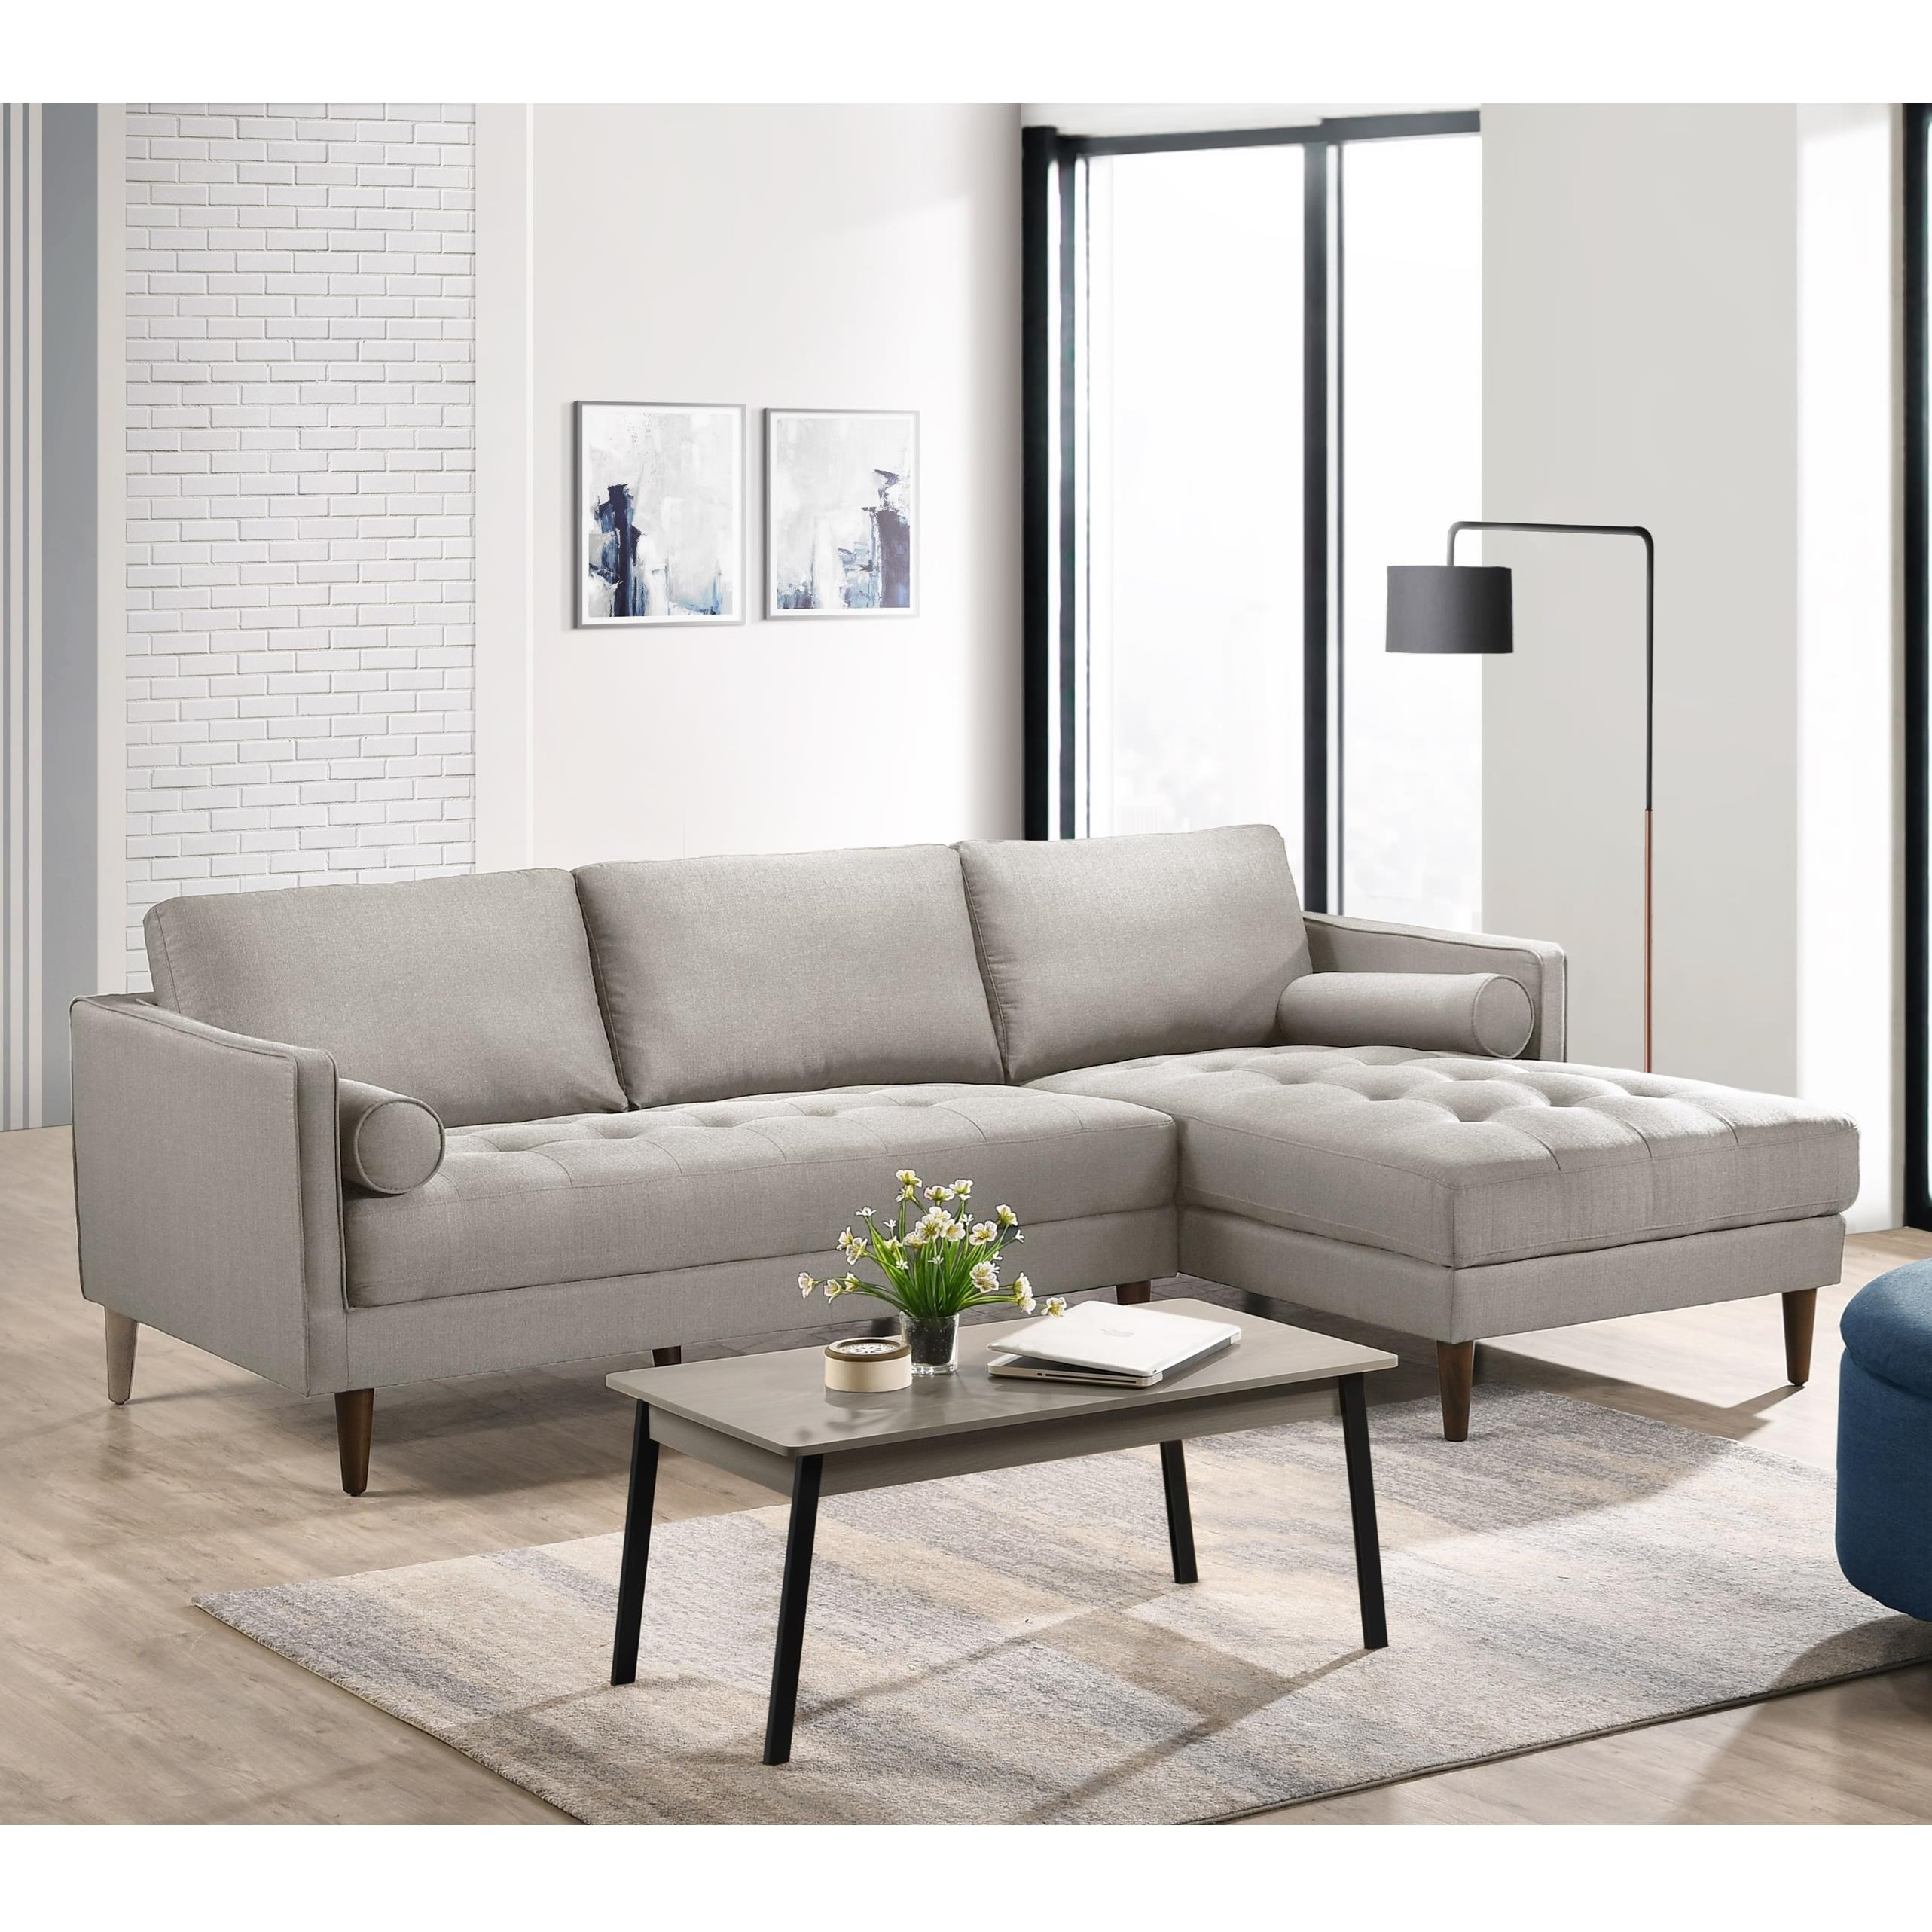 Sampson Sectional by Elements International at Dream Home Interiors